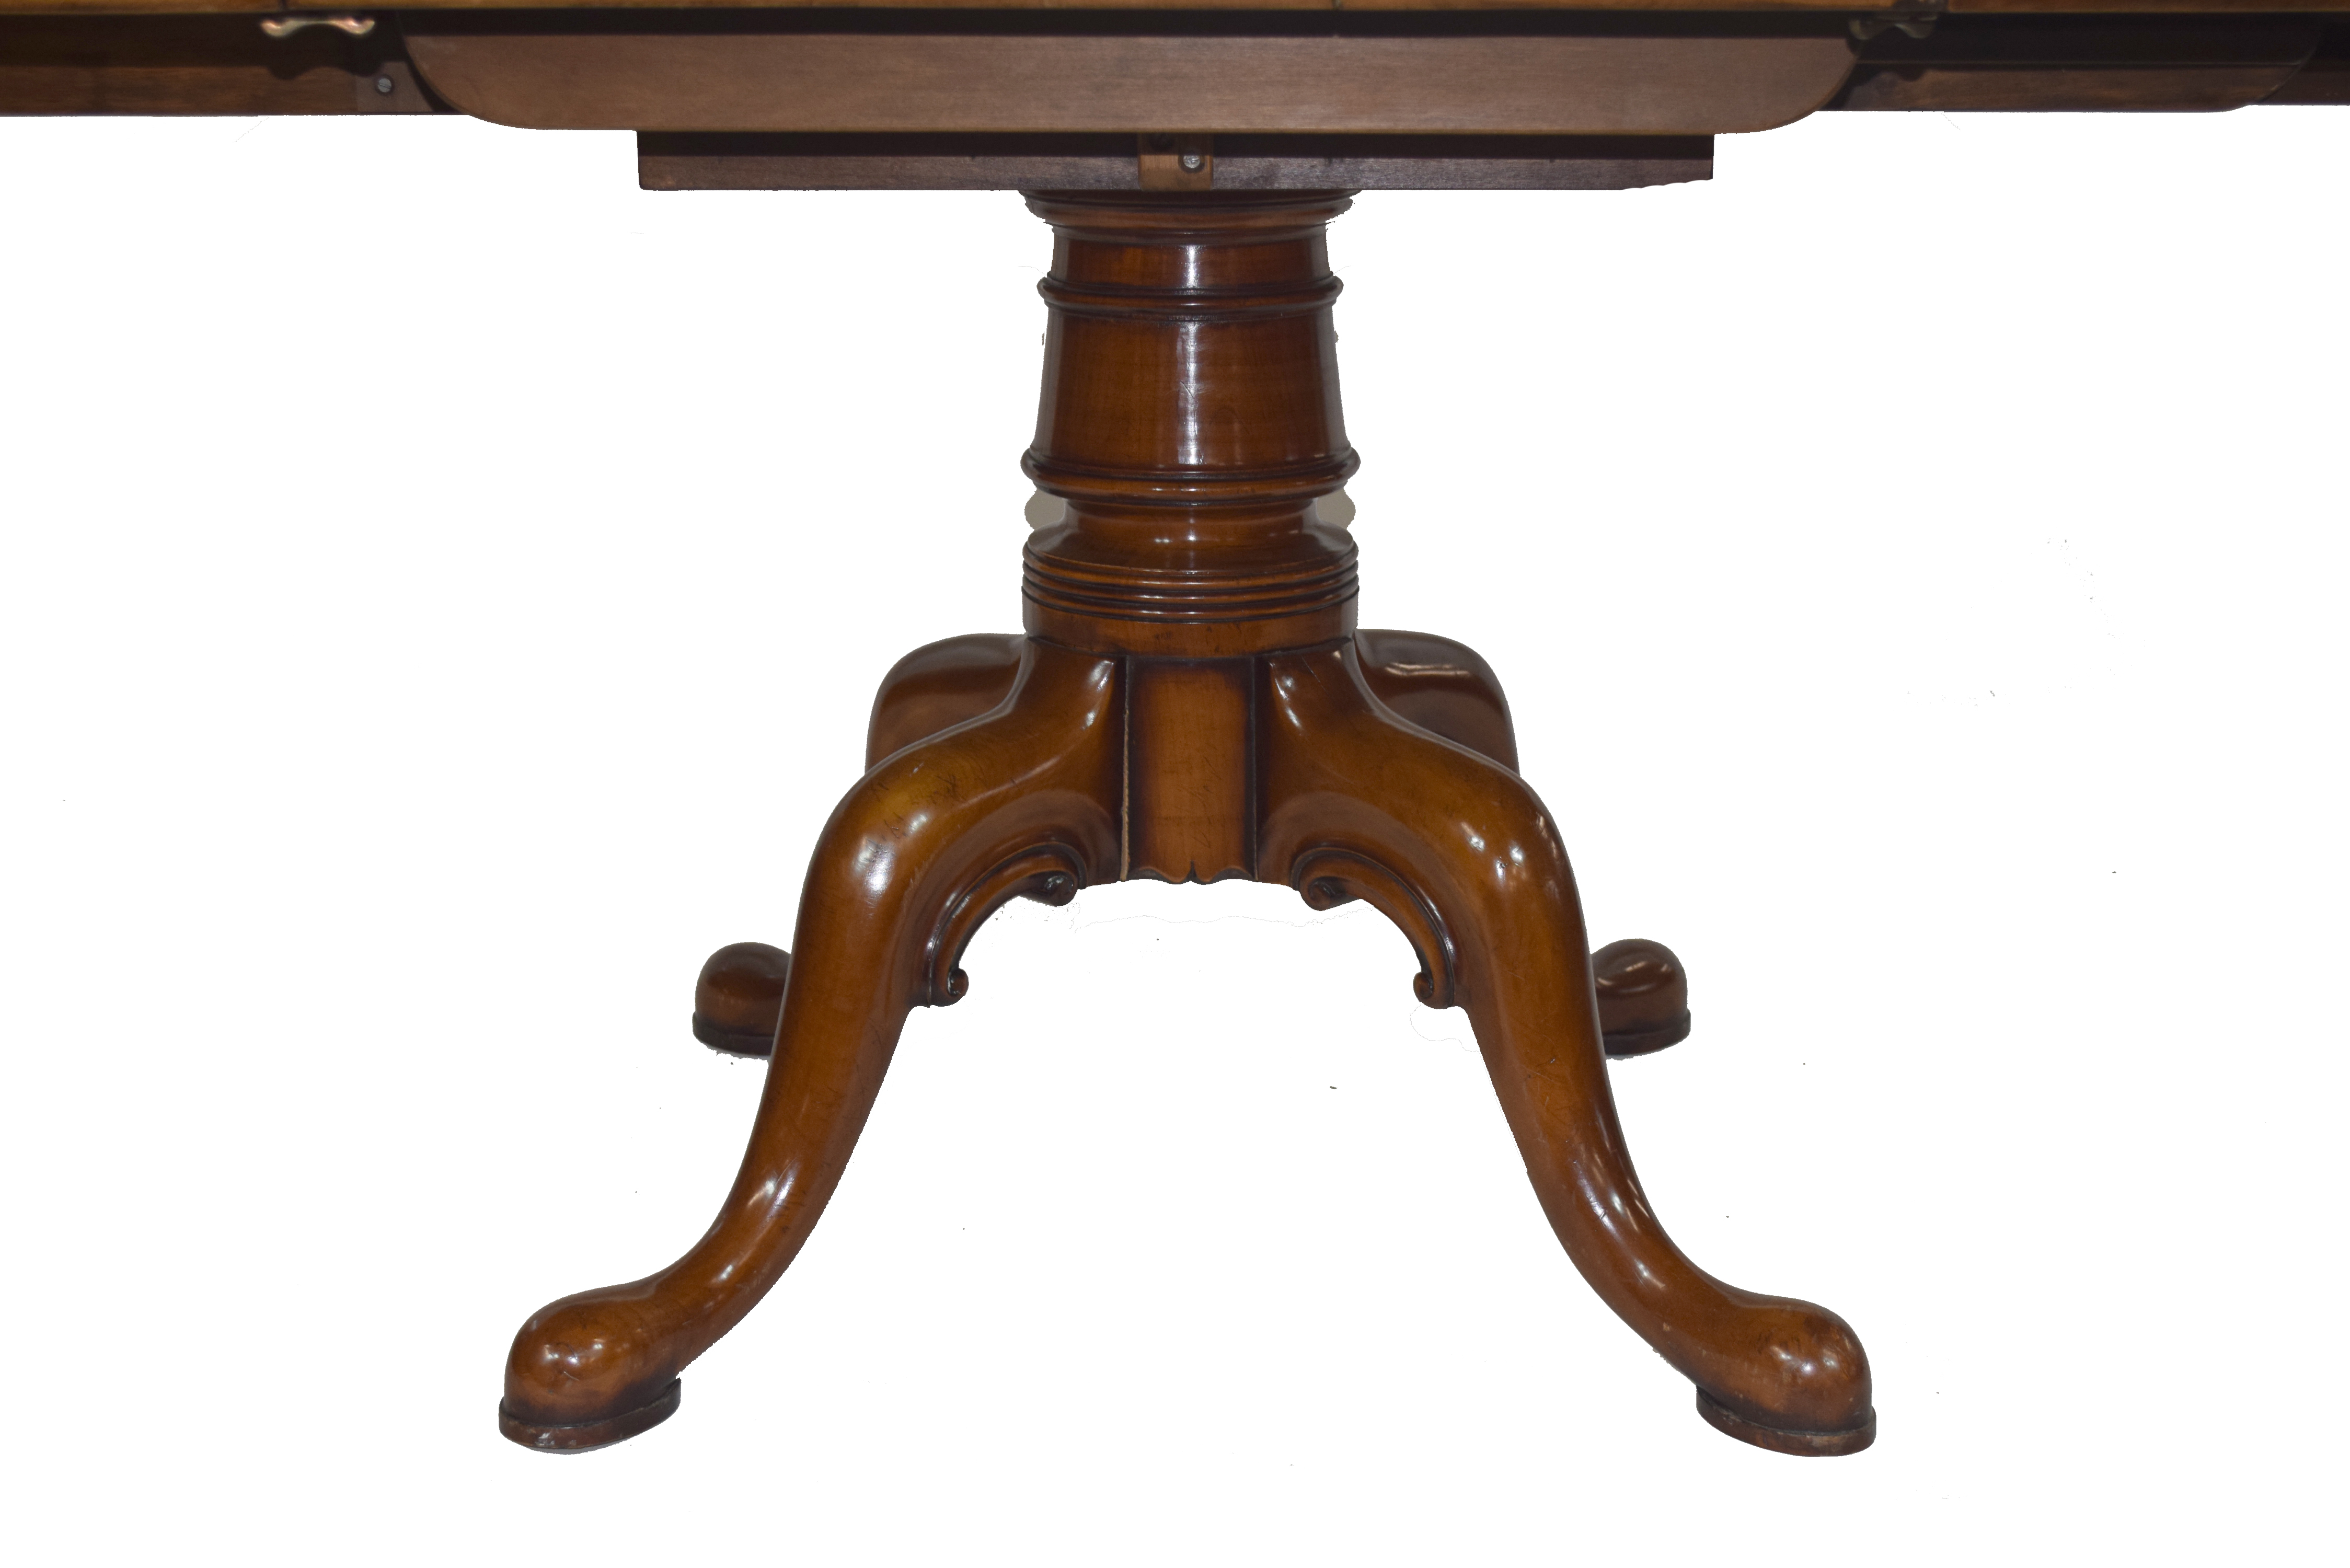 Good quality reproduction cherry wood dining table - Image 2 of 3